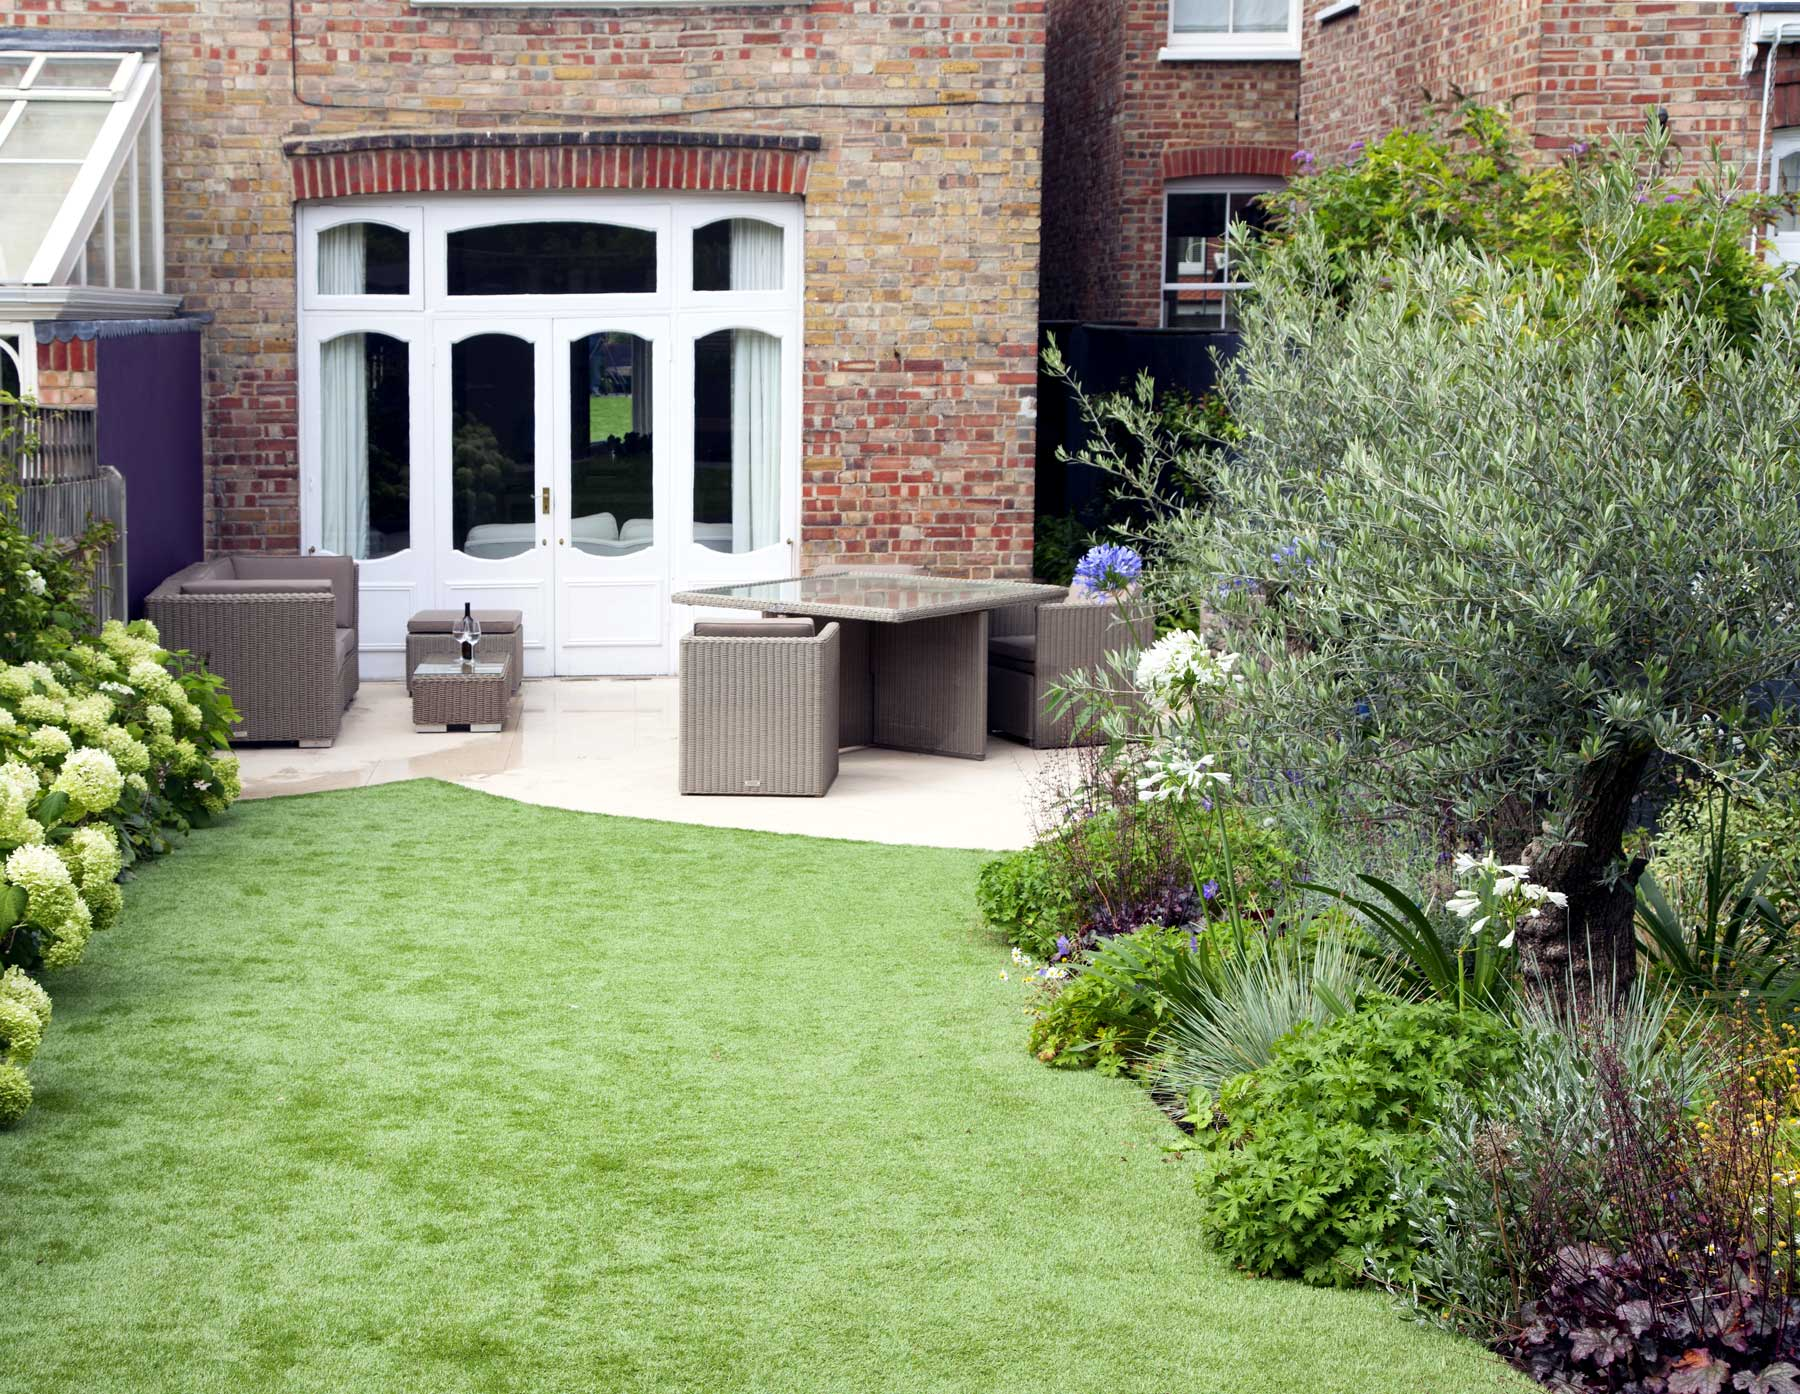 Garden design in dulwich kate eyre garden design for Back garden designs uk